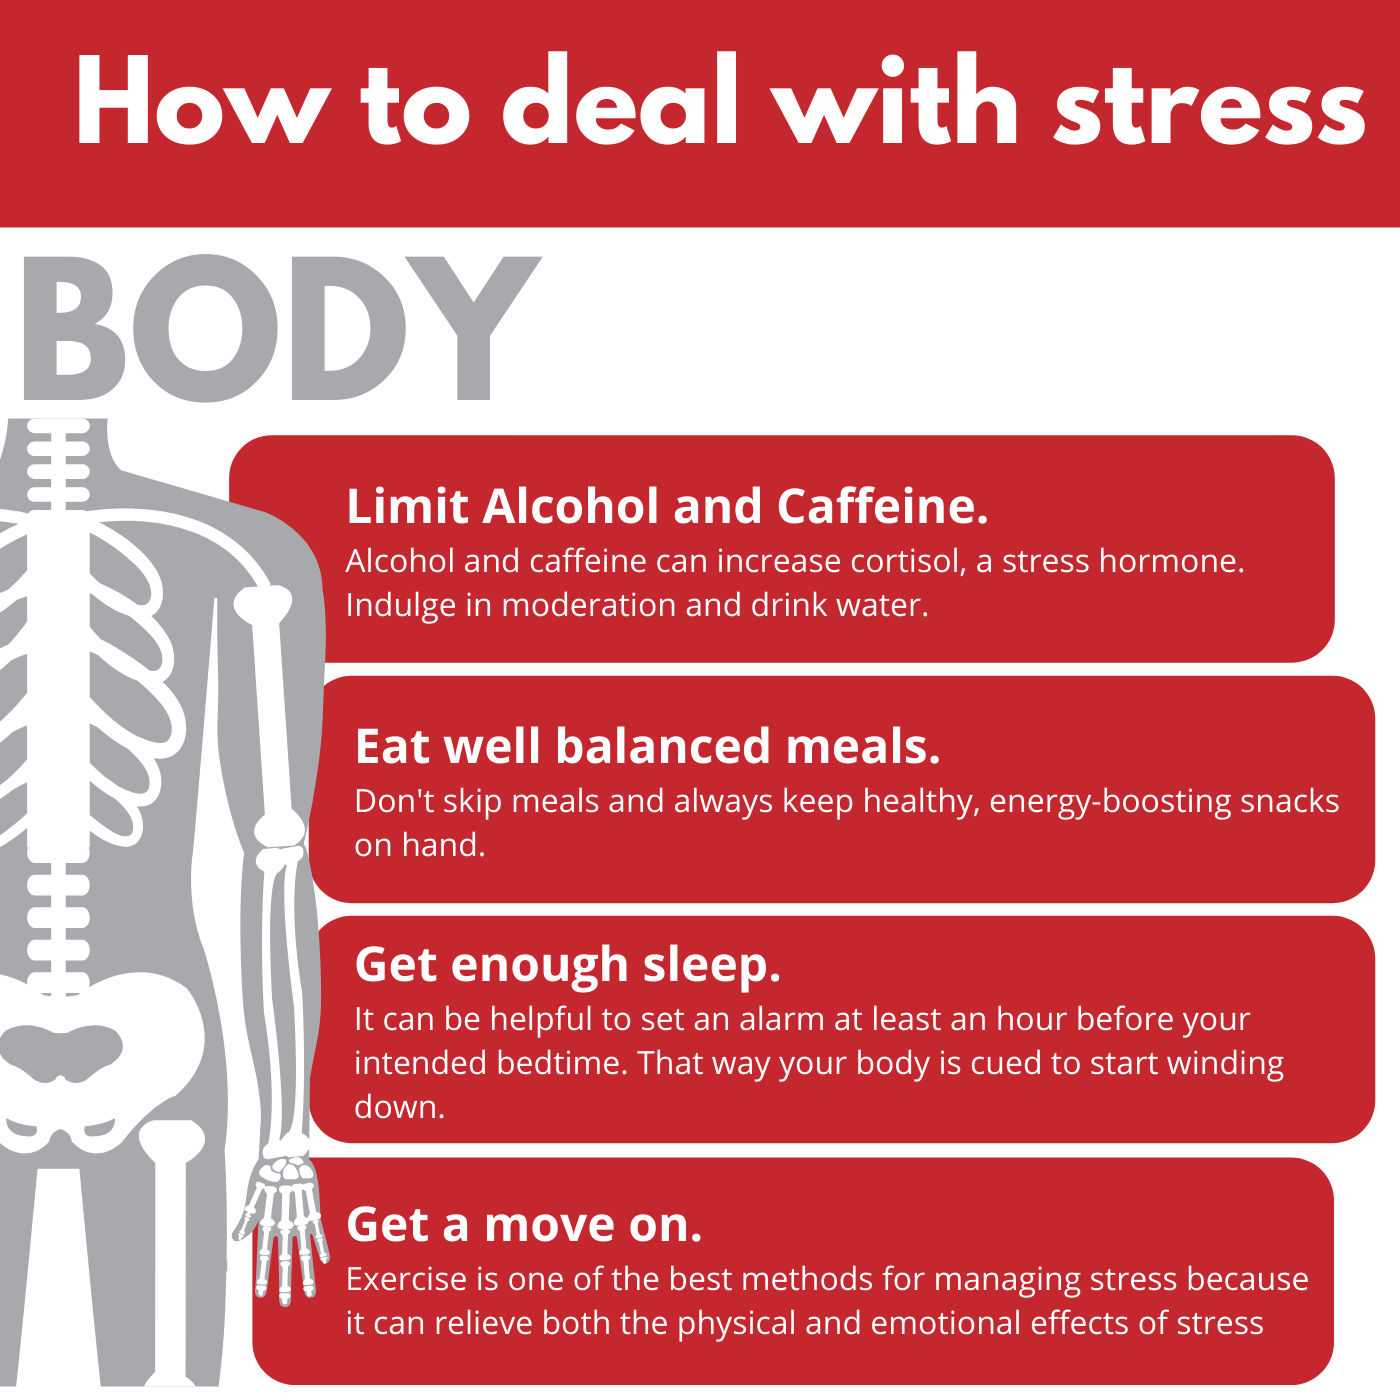 Limit Alcohol and Caffeine, Eat well balances meals, Get enough sleep, Exercise.